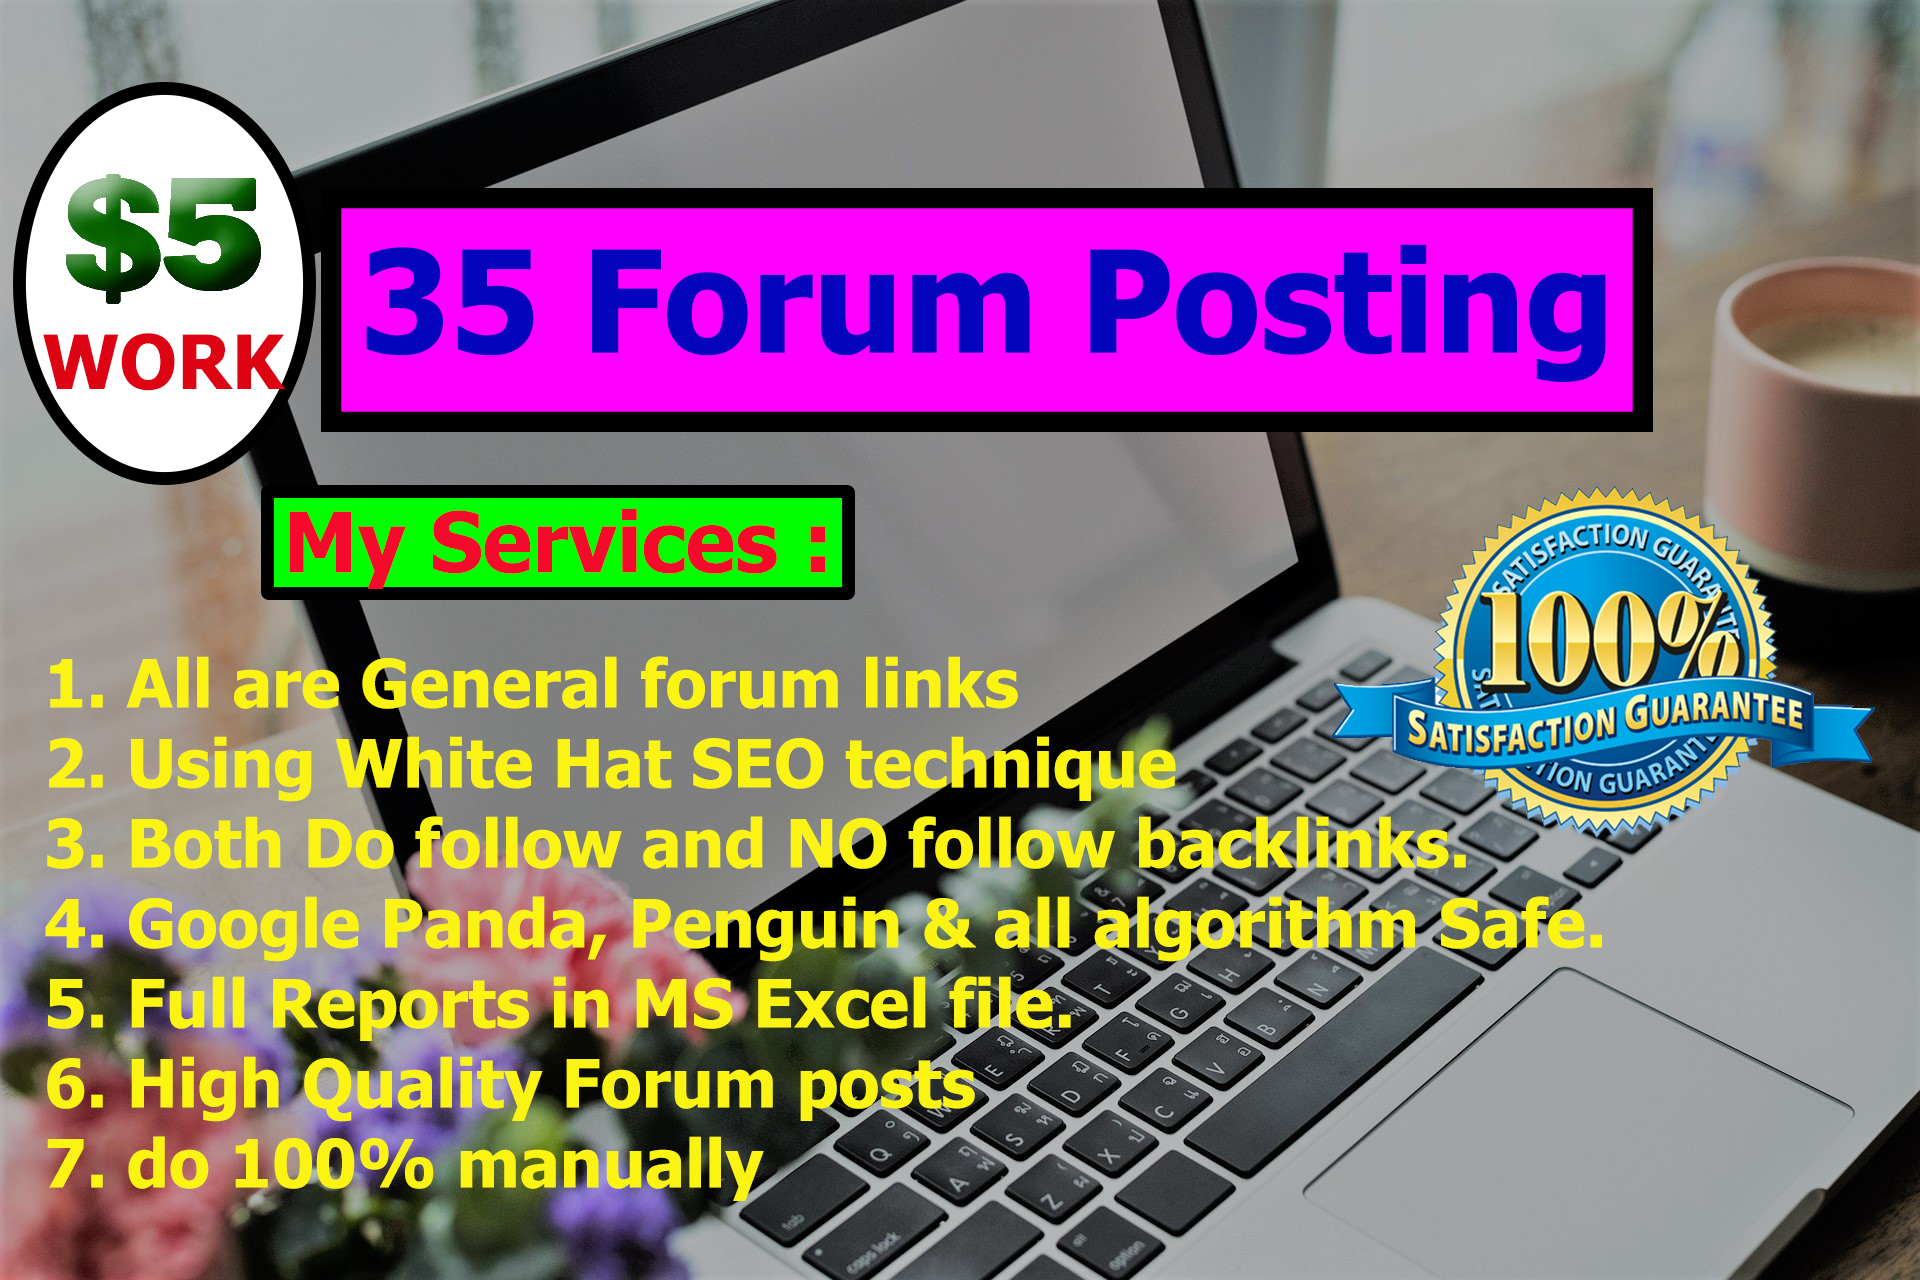 provide 35 HQ Manually General Forum Posts for your website